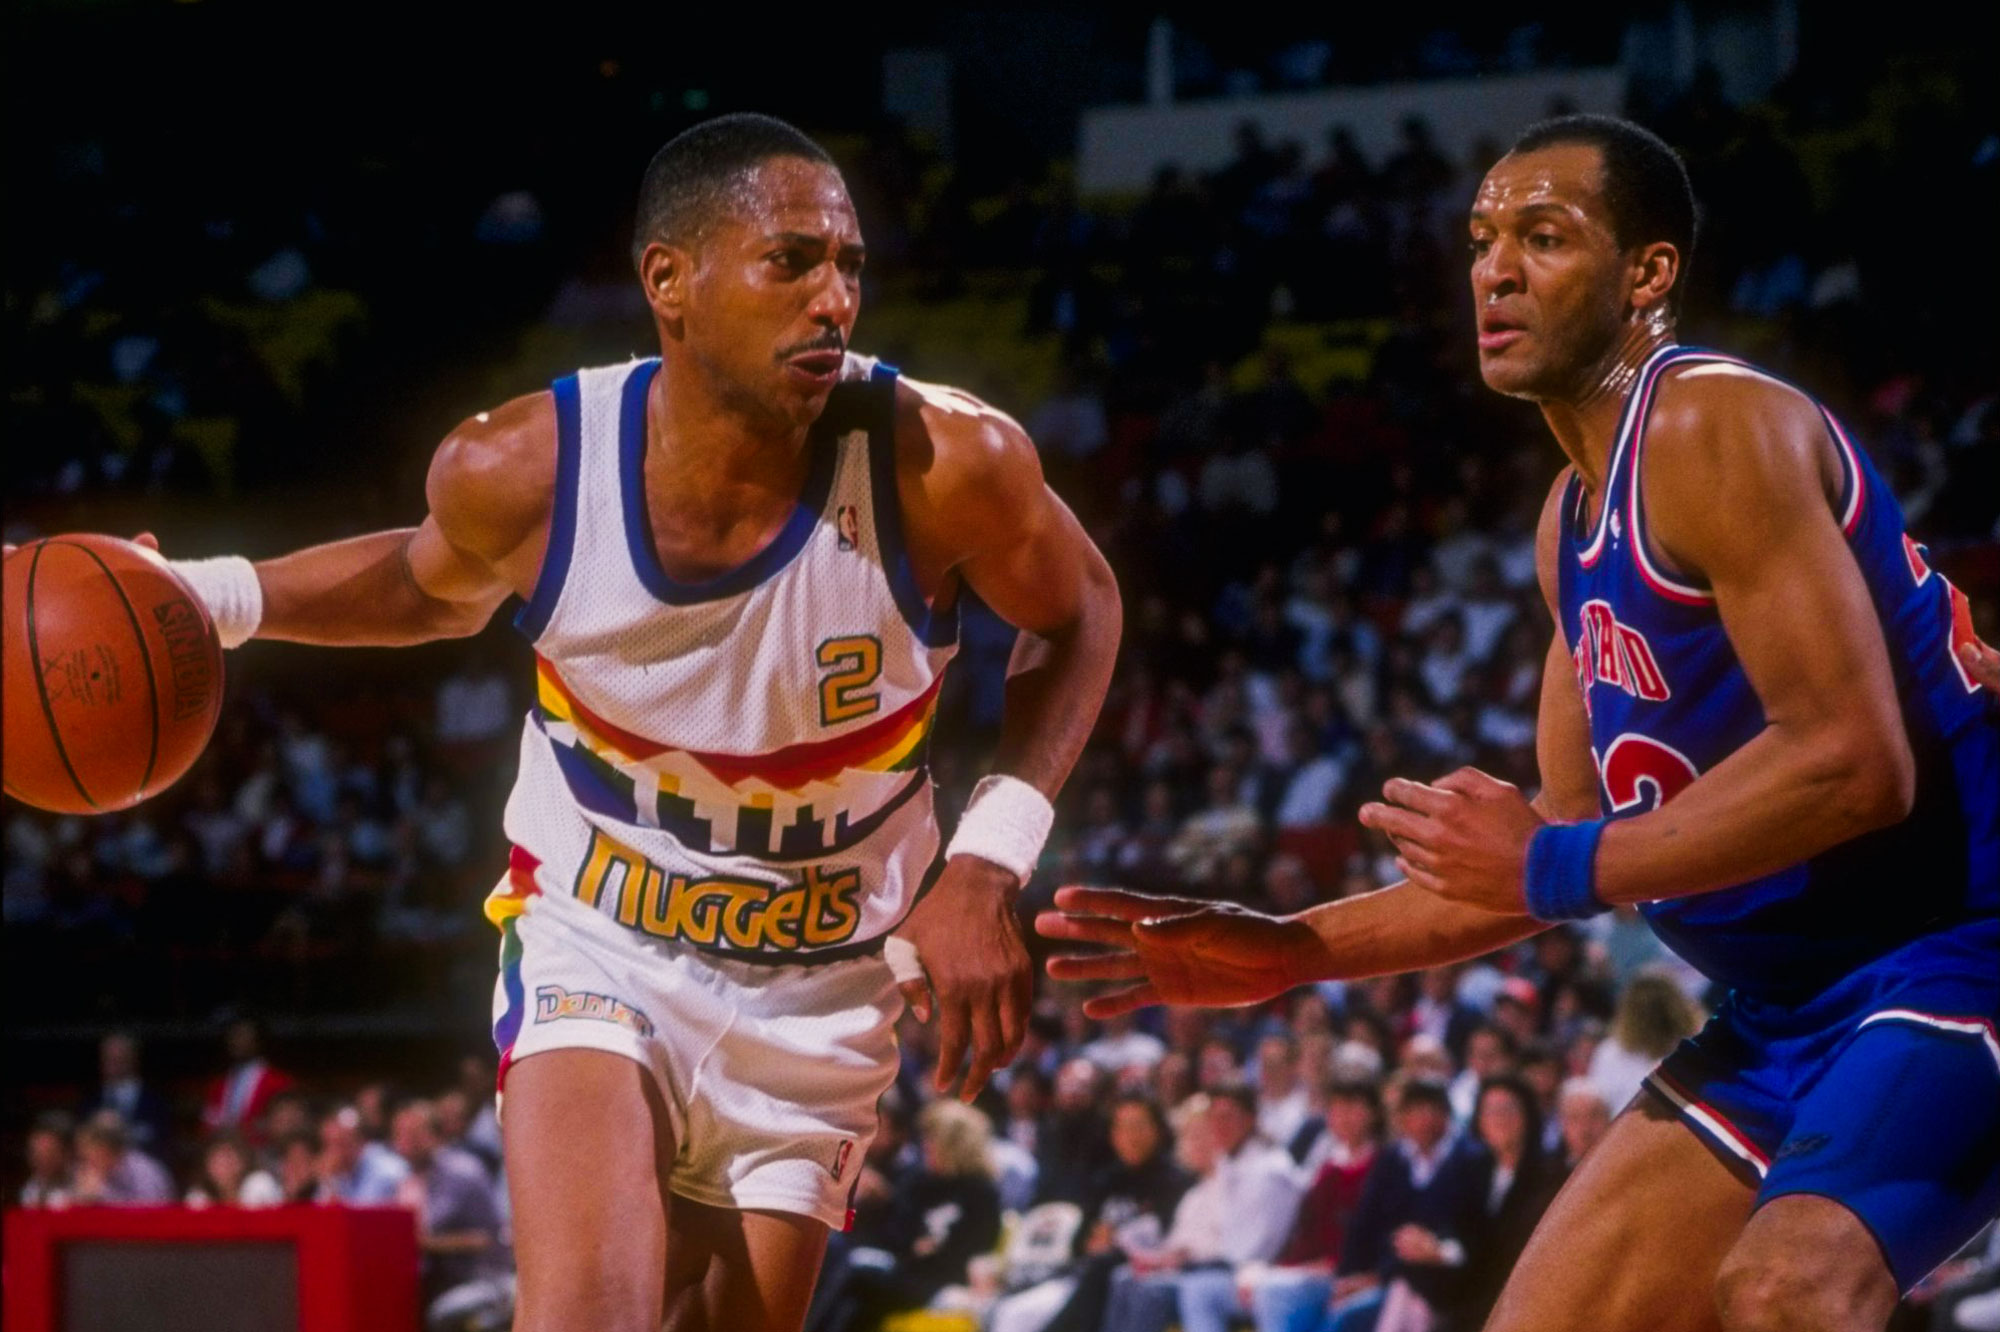 <p>Alex English of the Denver Nuggets moves the ball during a game versus the Cleveland Cavaliers during the 1989-1990 season at the McNichols Sports Arena in Denver, Colo.</p>